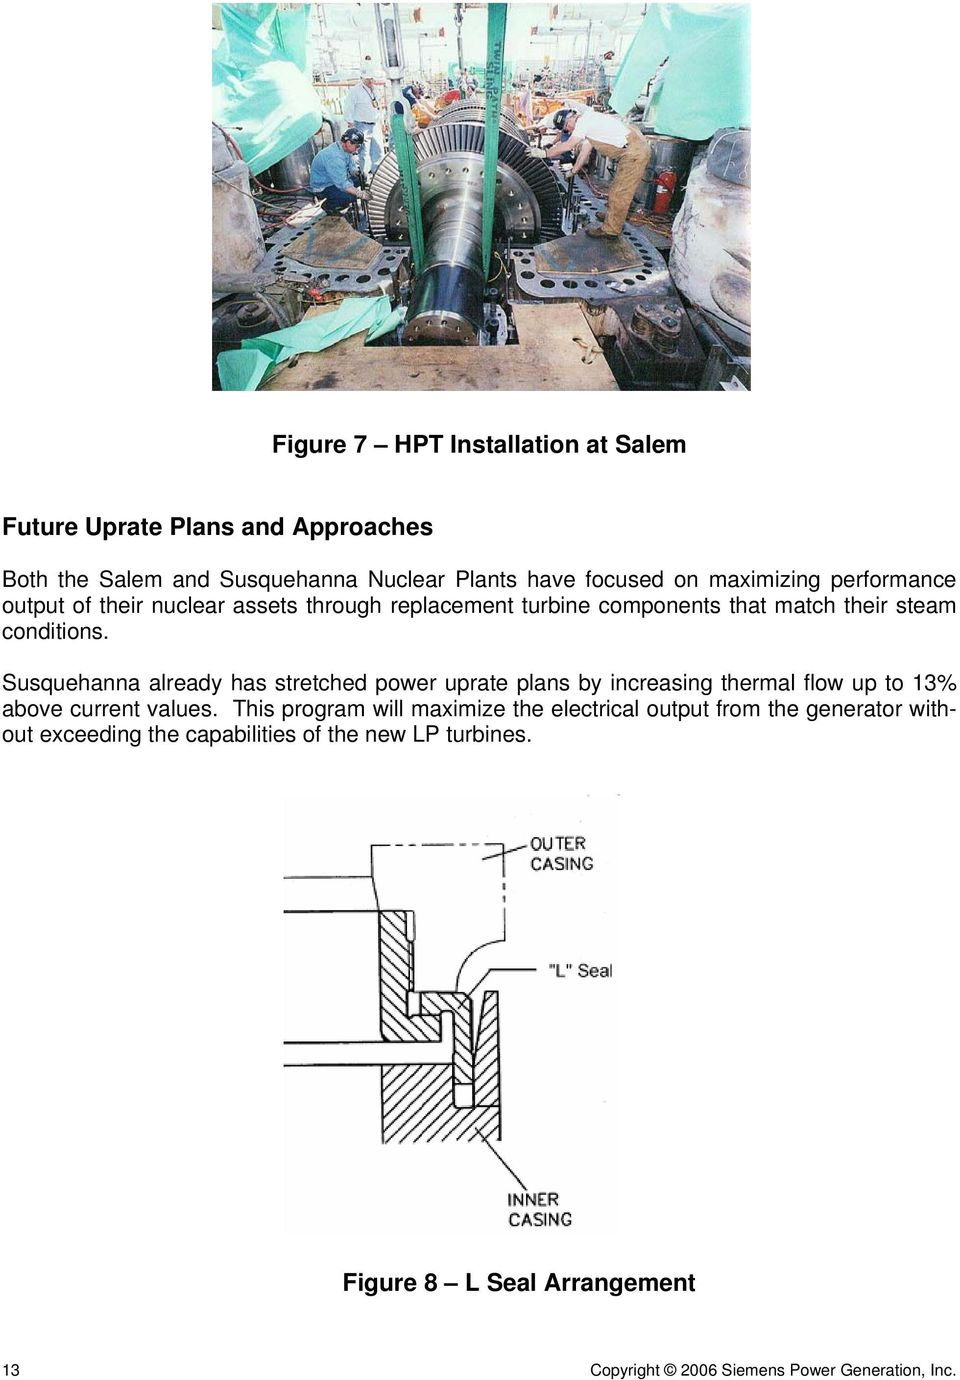 Turbine Modernization Projects At Susquehanna And Salem Nuclear Power Plant Flow Diagram Already Has Stretched Uprate Plans By Increasing Thermal Up To 13 Above